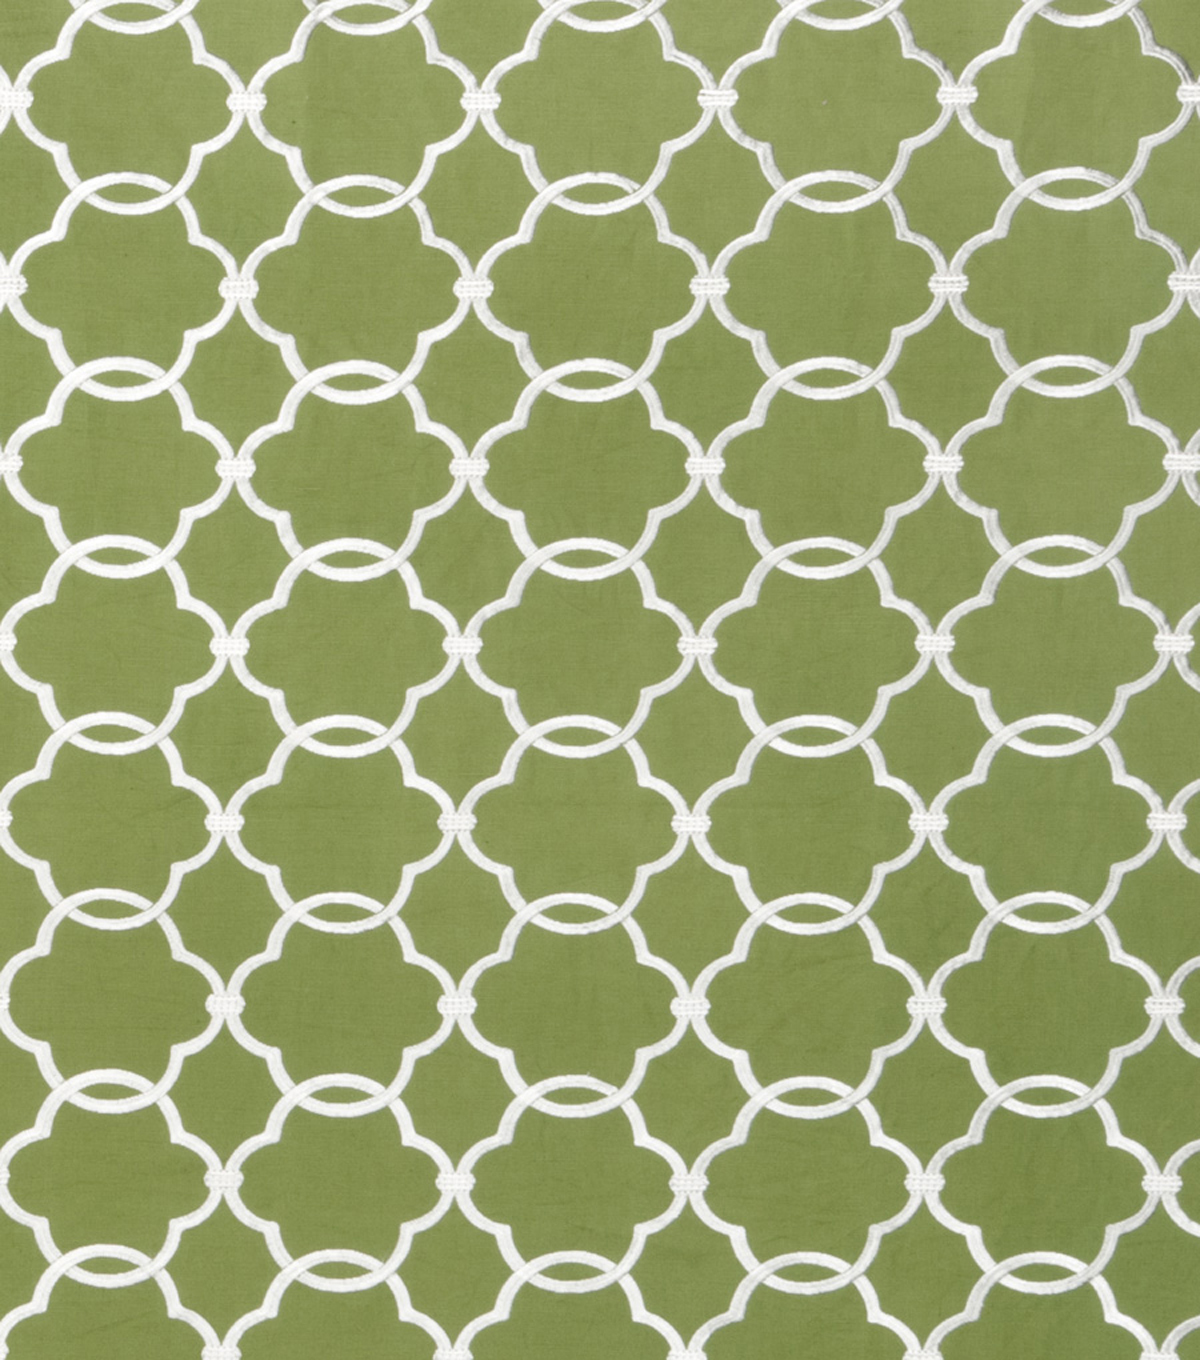 Eaton Square Print Fabric 53\u0022-Spackle/Grass